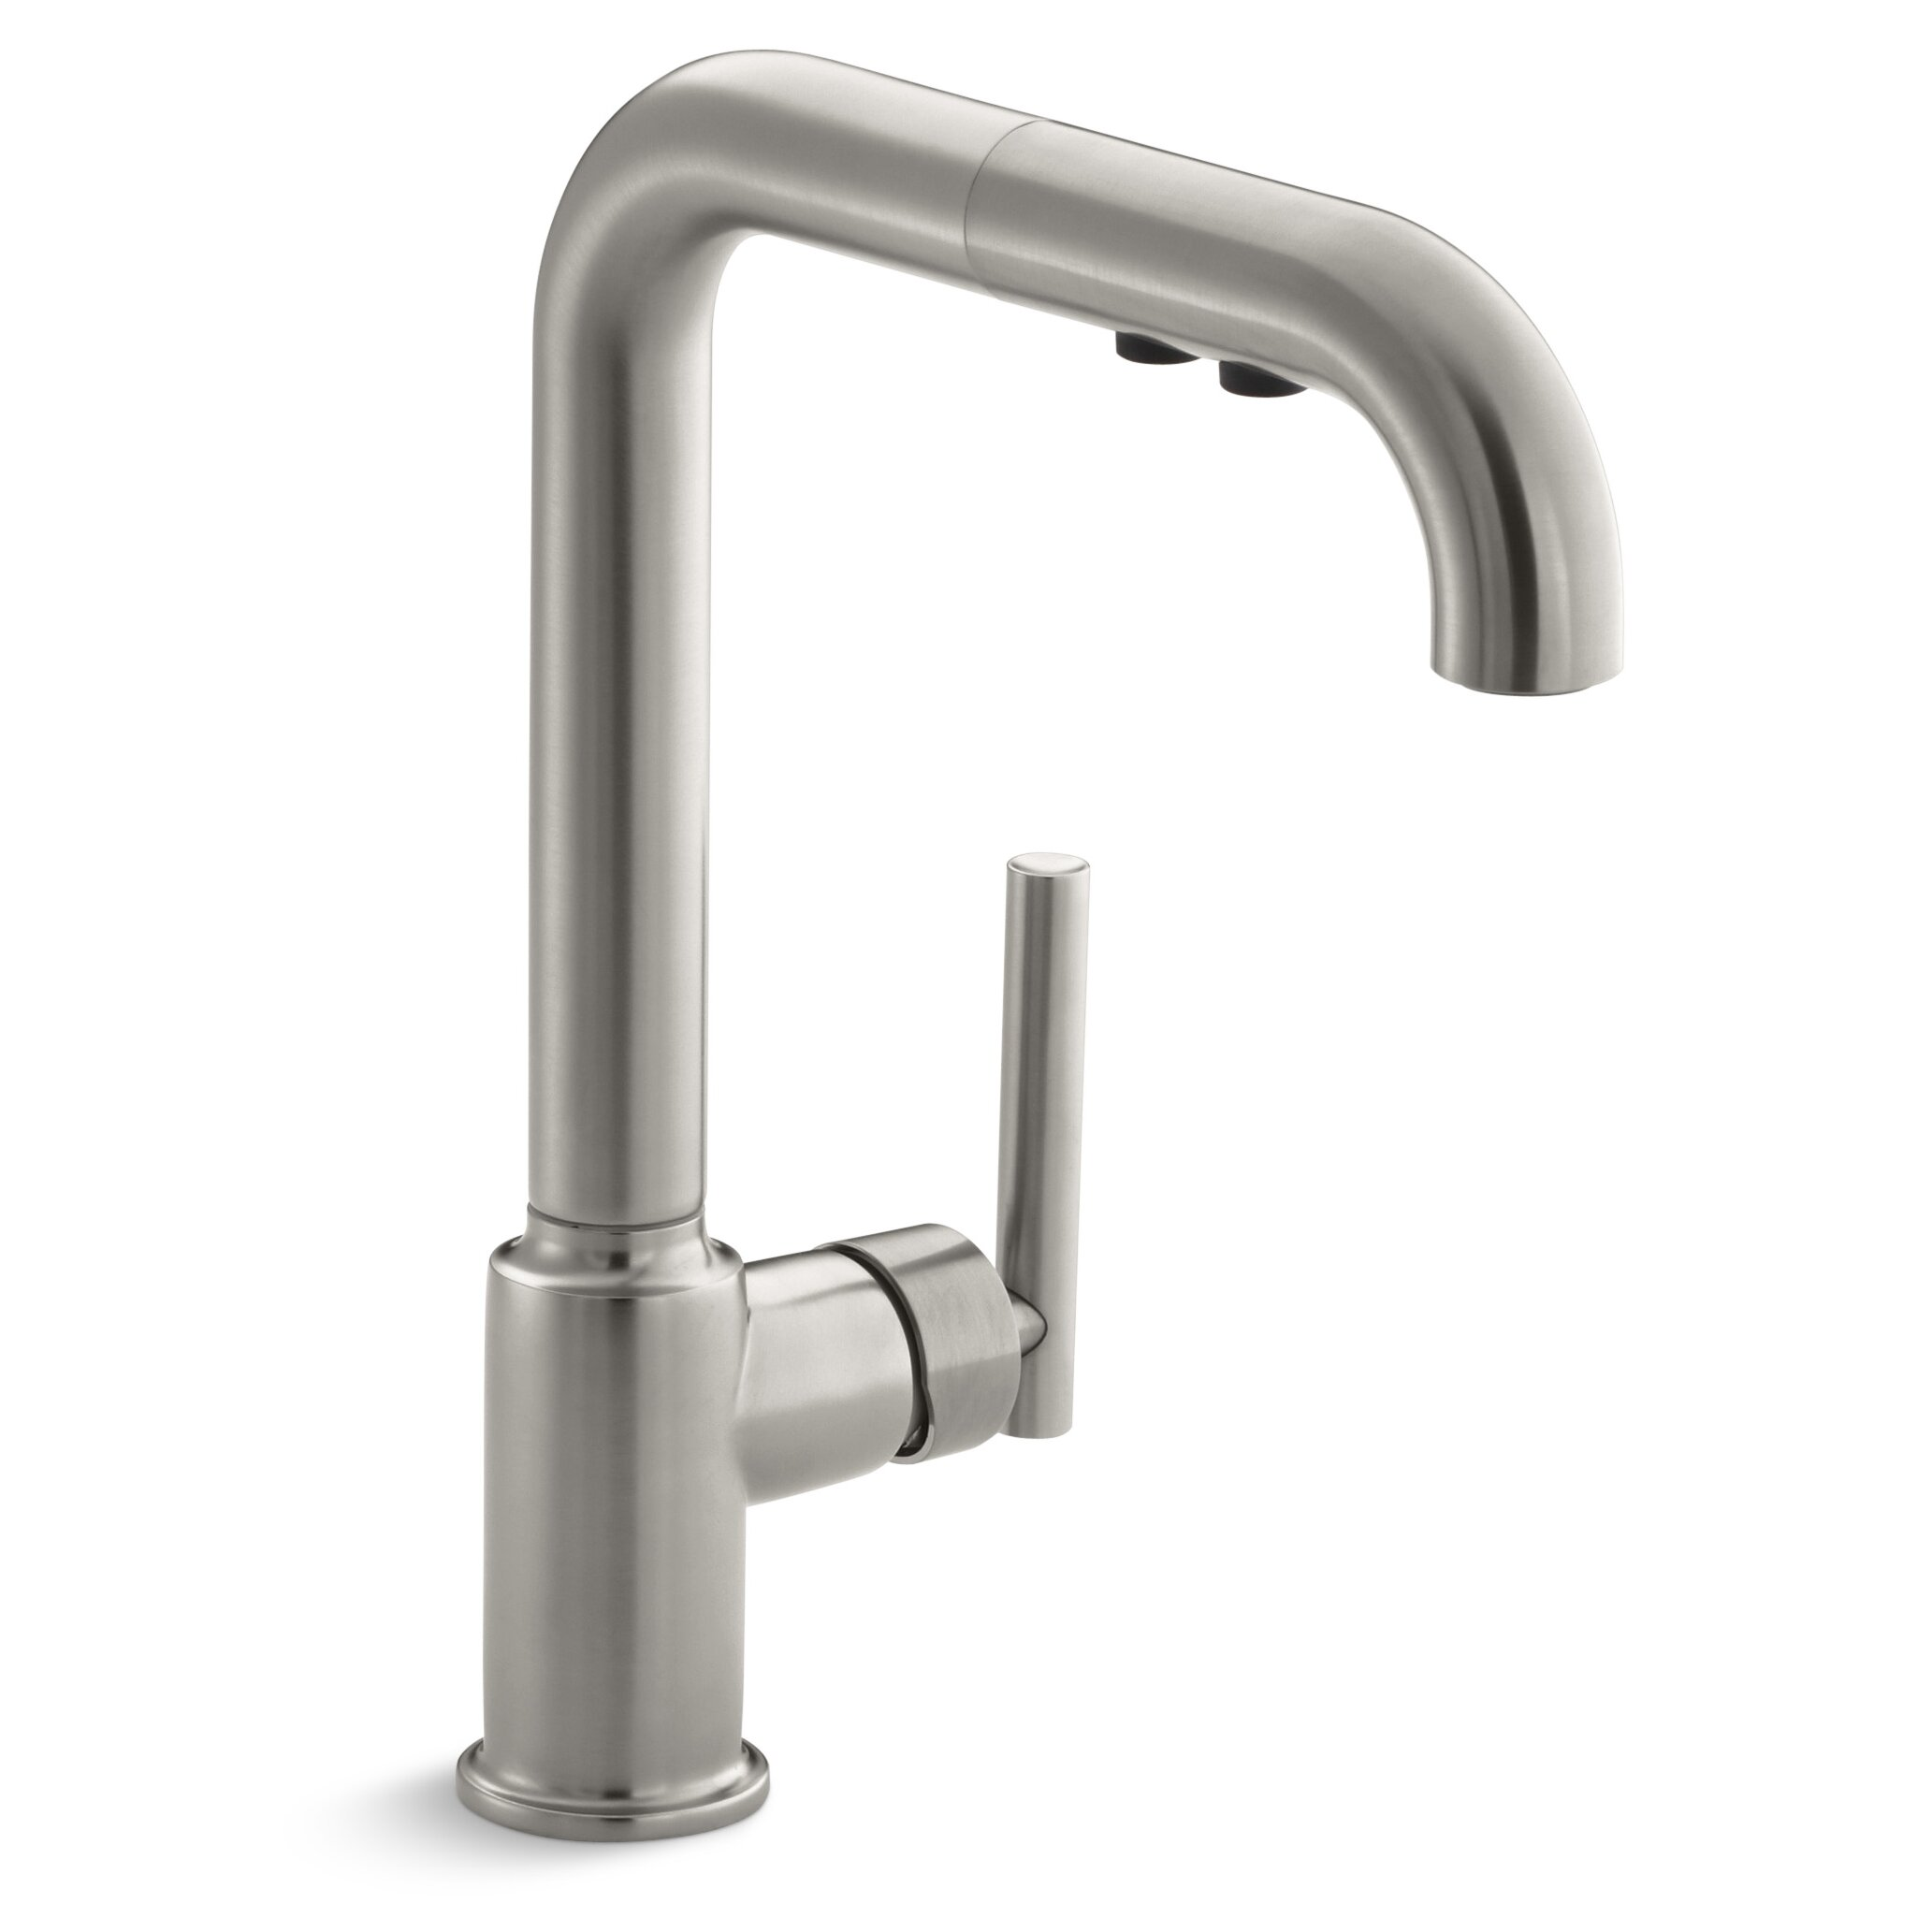 Kohler Purist Single Hole Kitchen Sink Faucet With 8